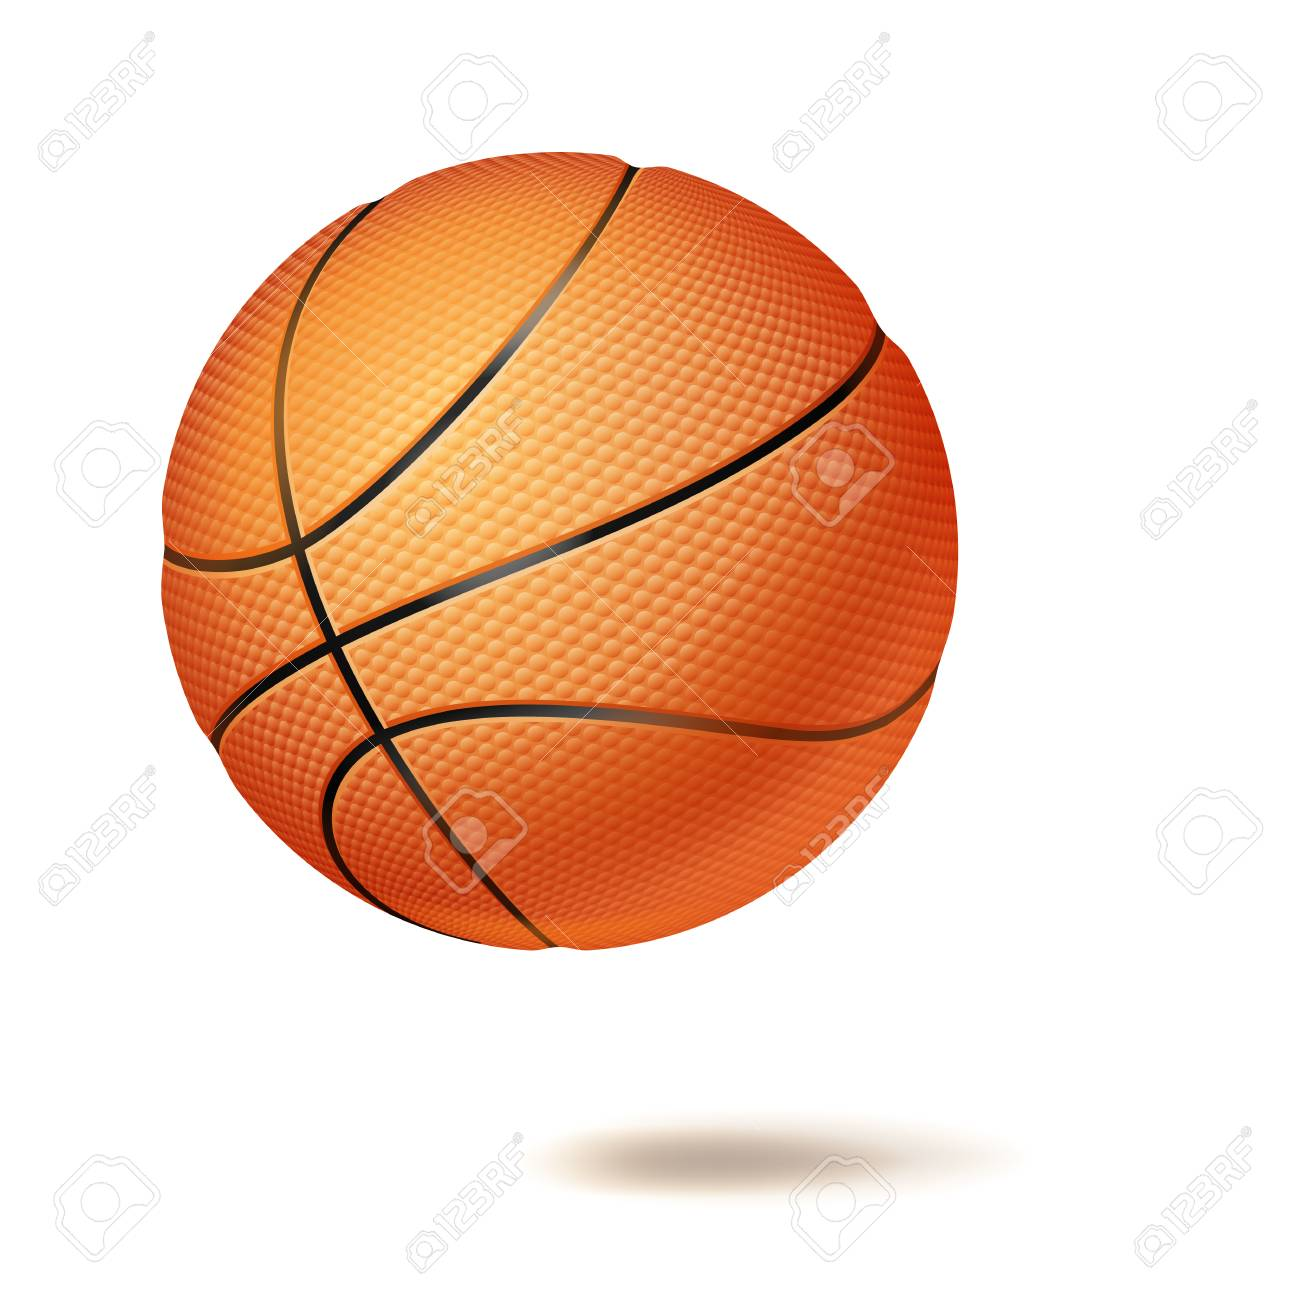 Basketball Ball 3d Basketball Ball Vector Classic Orange Ball Illustration